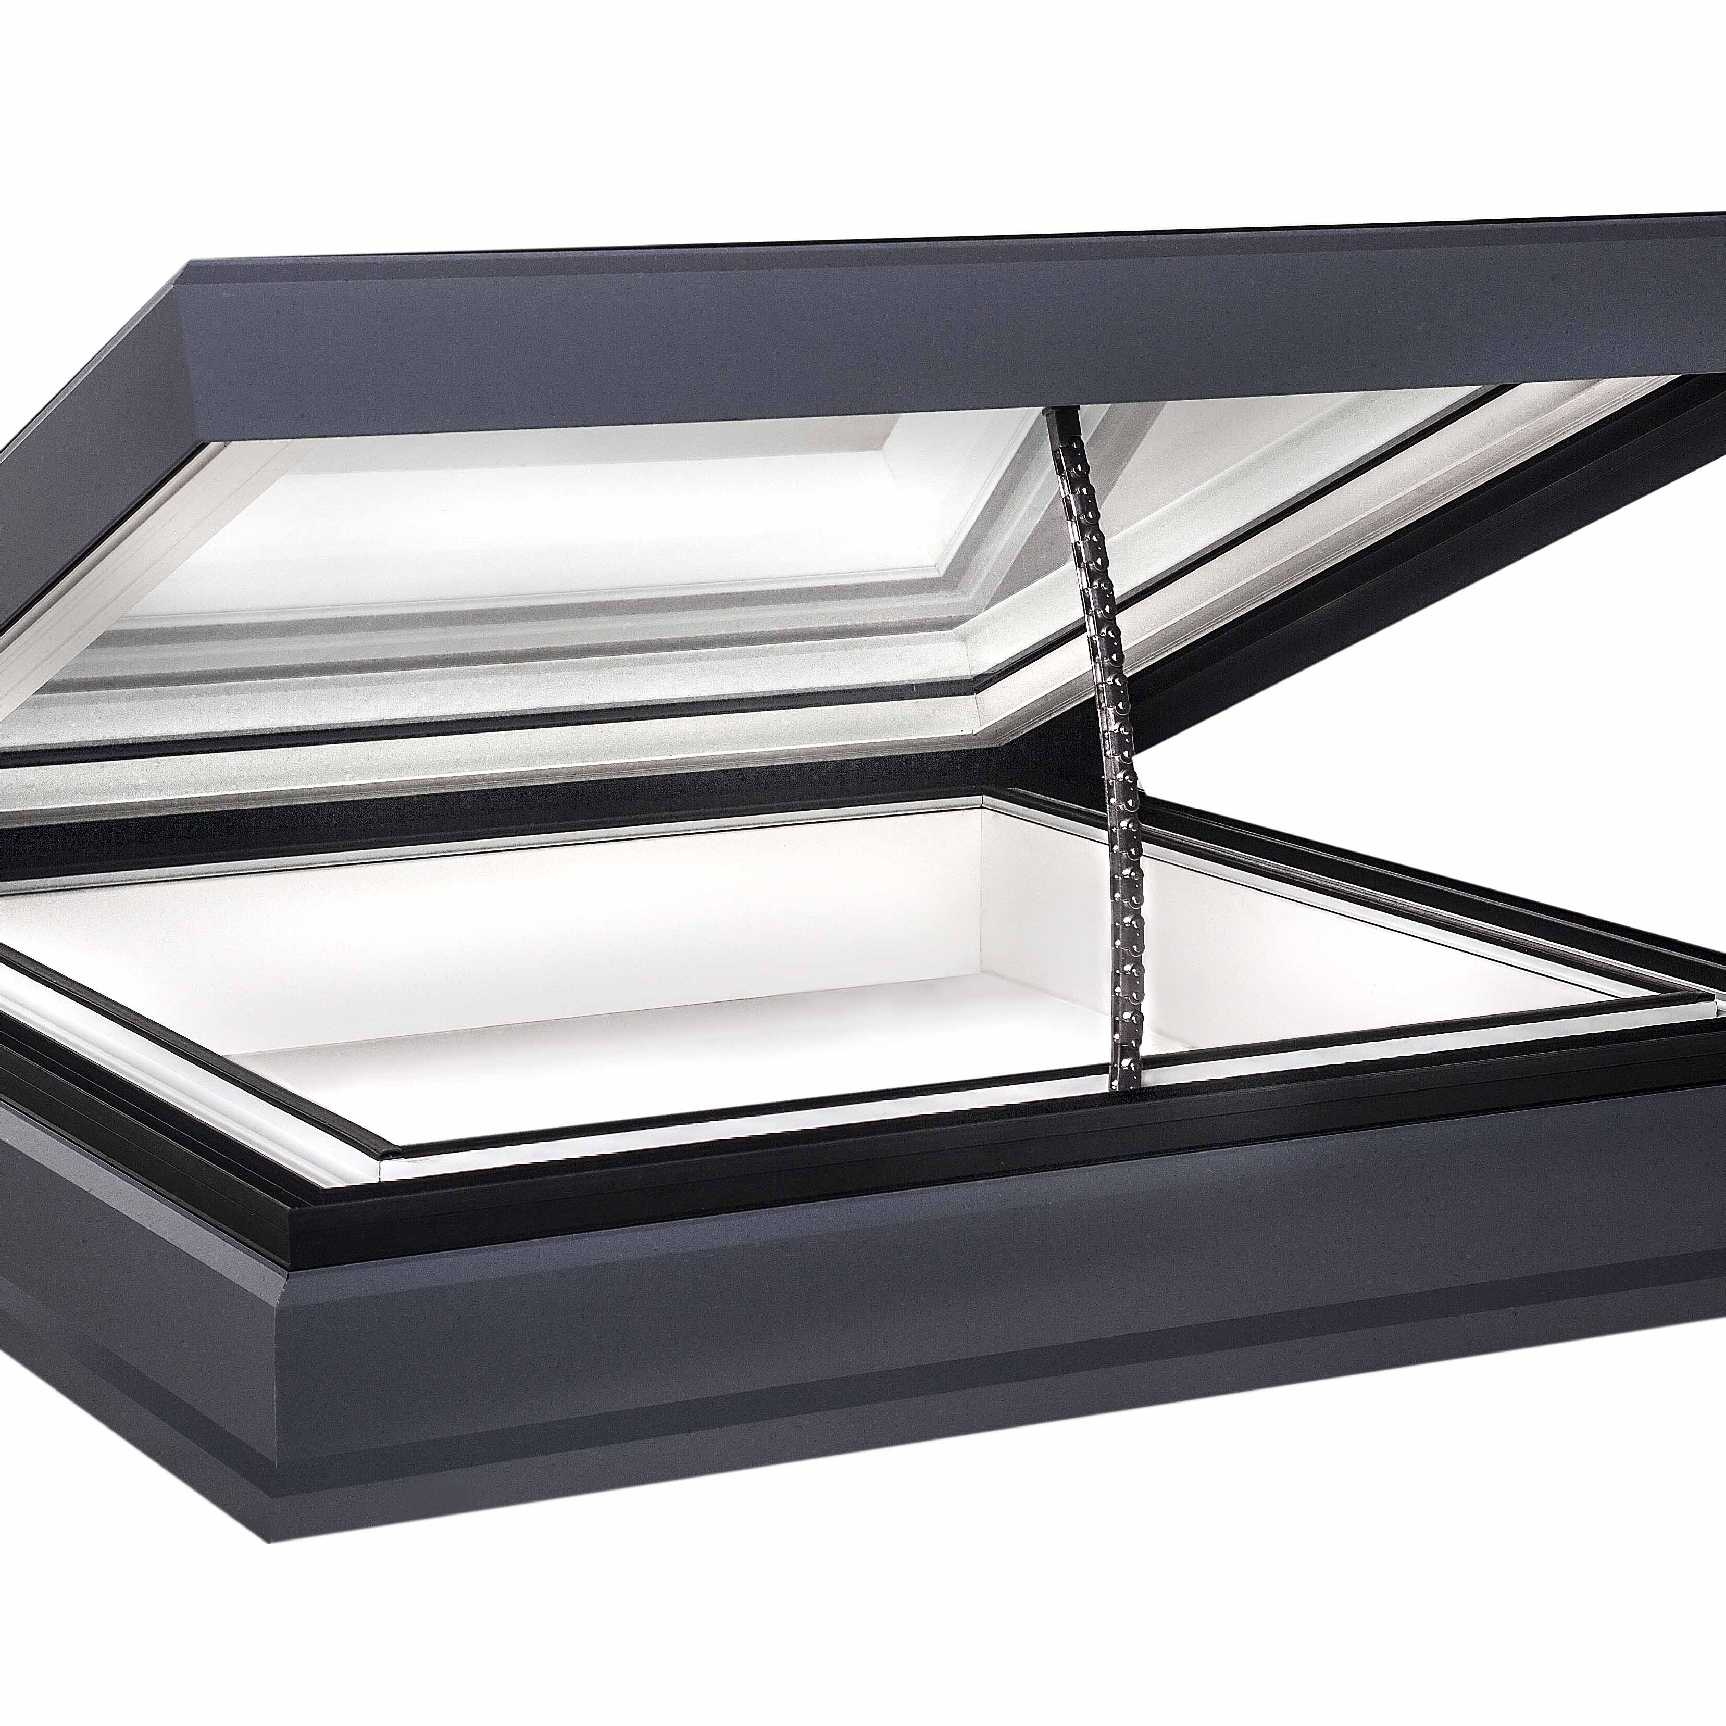 Affordable EcoGard Flat Roof light, Double Glazed, Electric Opening, 1,000mm x 1,000mm